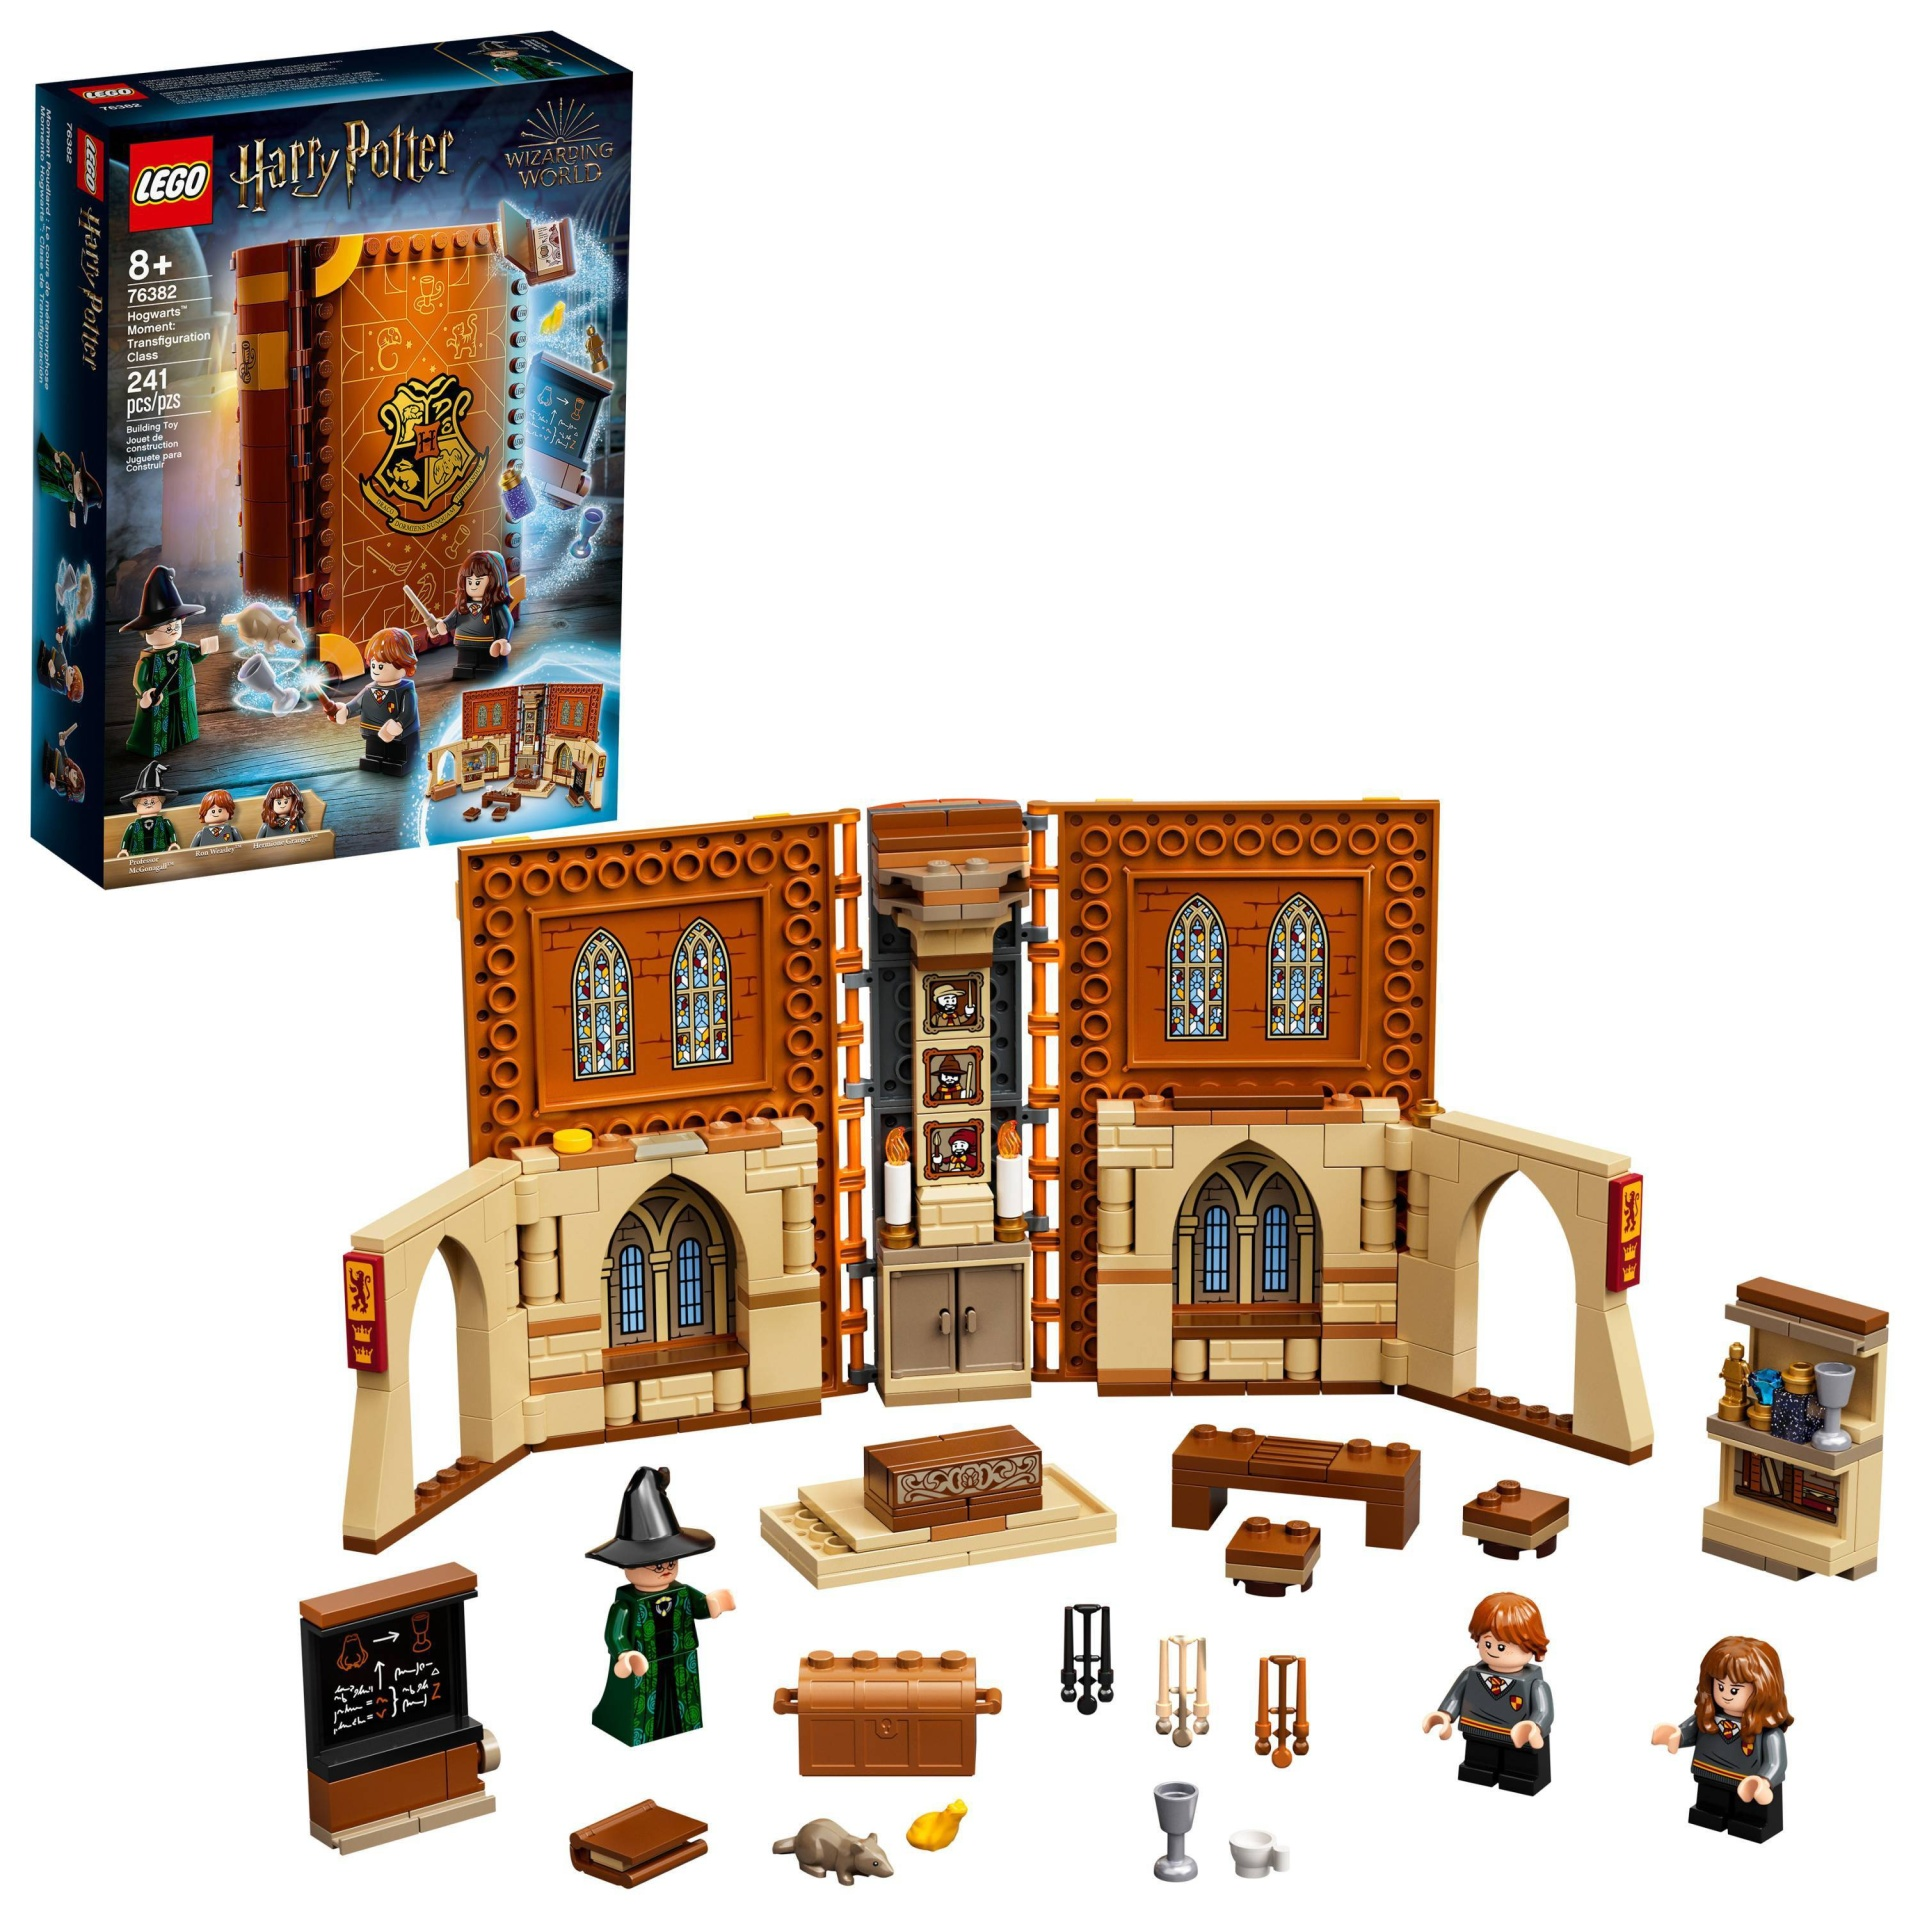 slide 1 of 7, LEGO Harry Potter Hogwarts Moment: Transfiguration Class; Collectible Playset 76382,